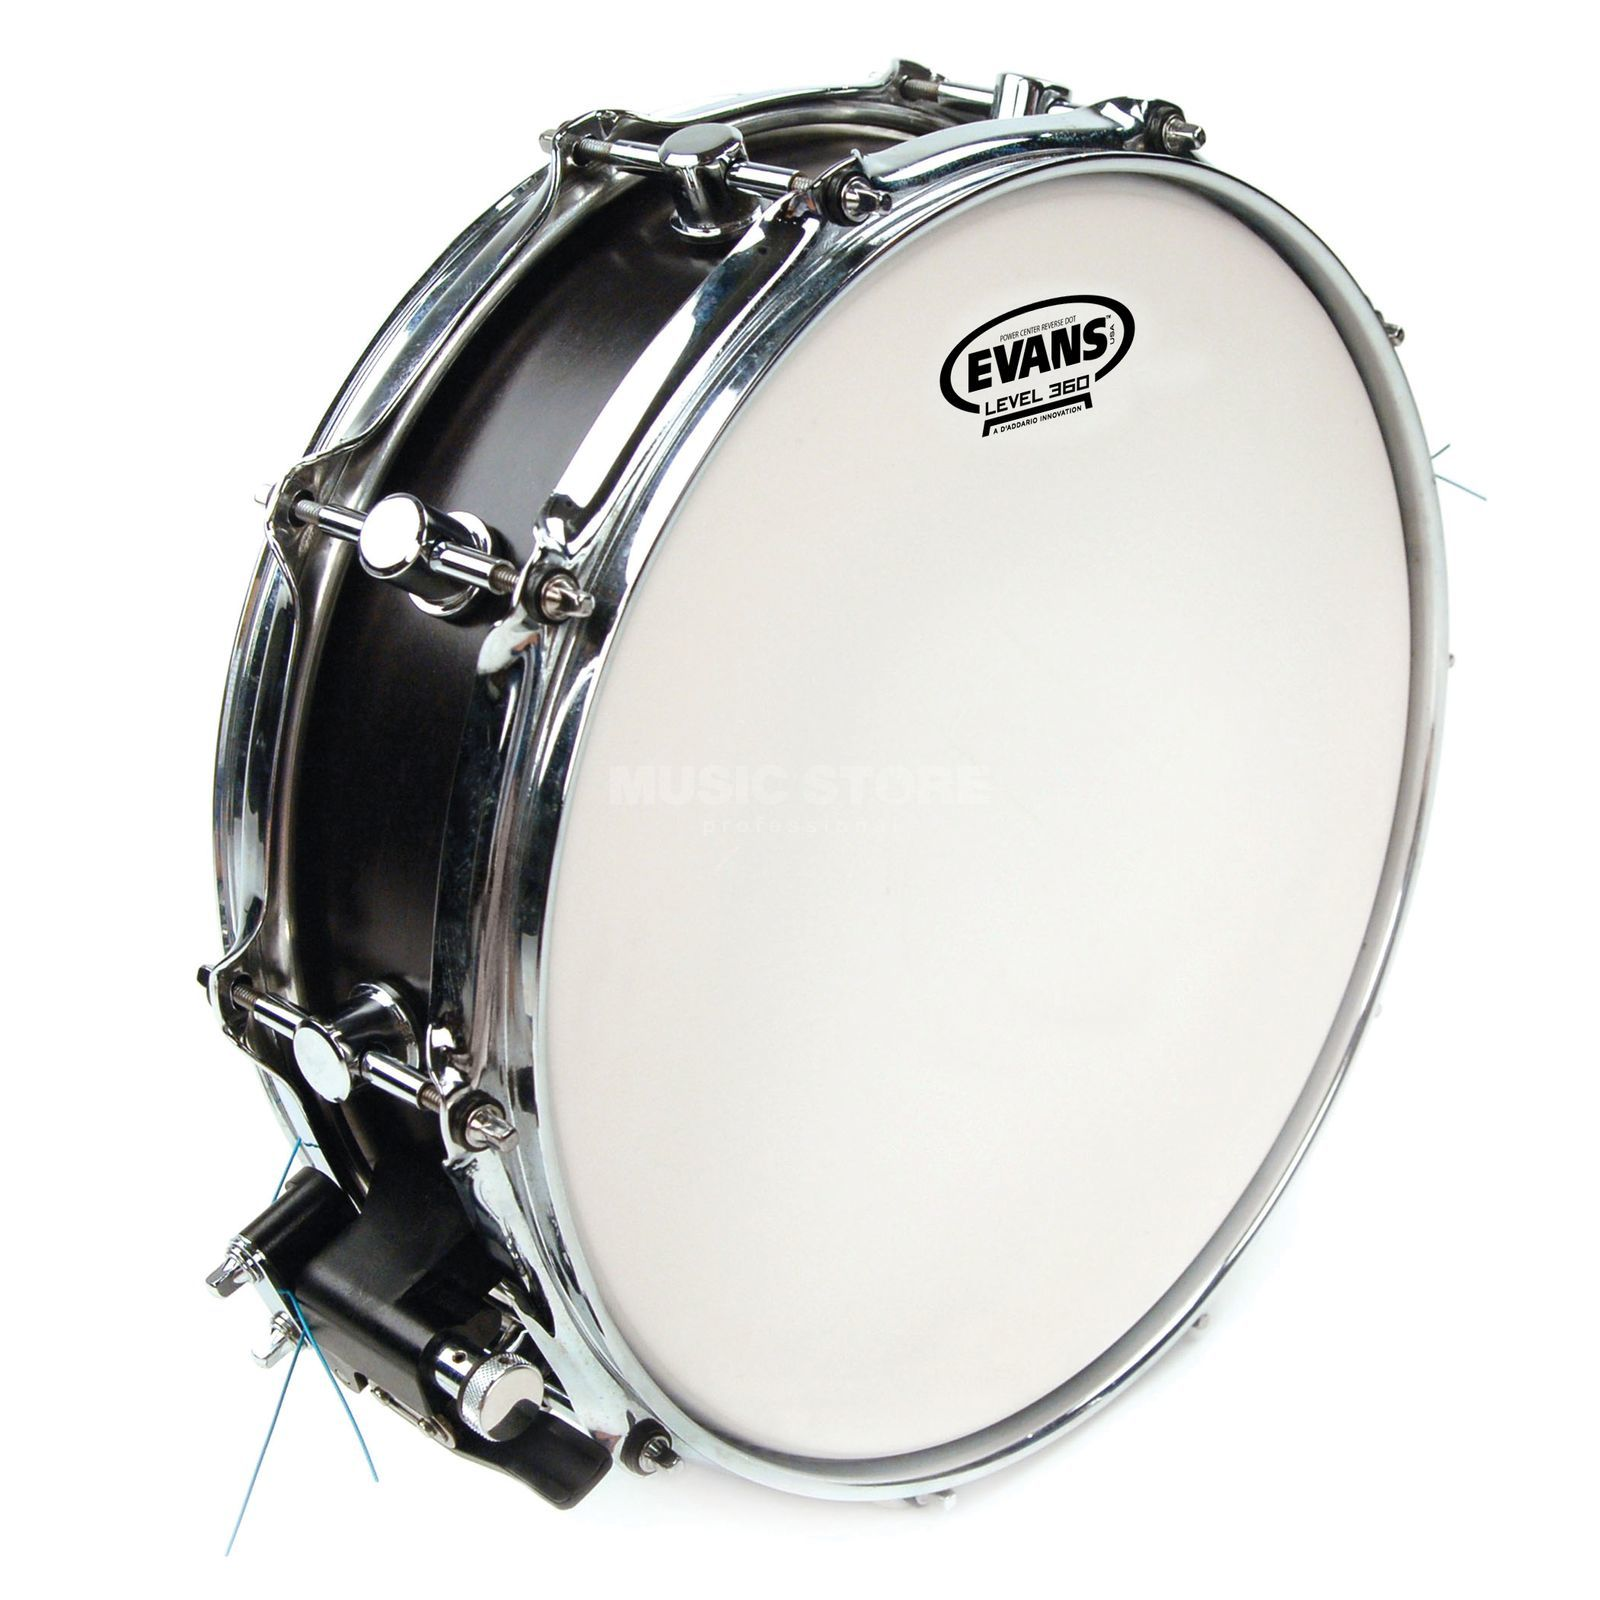 "Evans Power Center 12"", B12G1RD, Reverse Dot, Snare Batter Produktbillede"